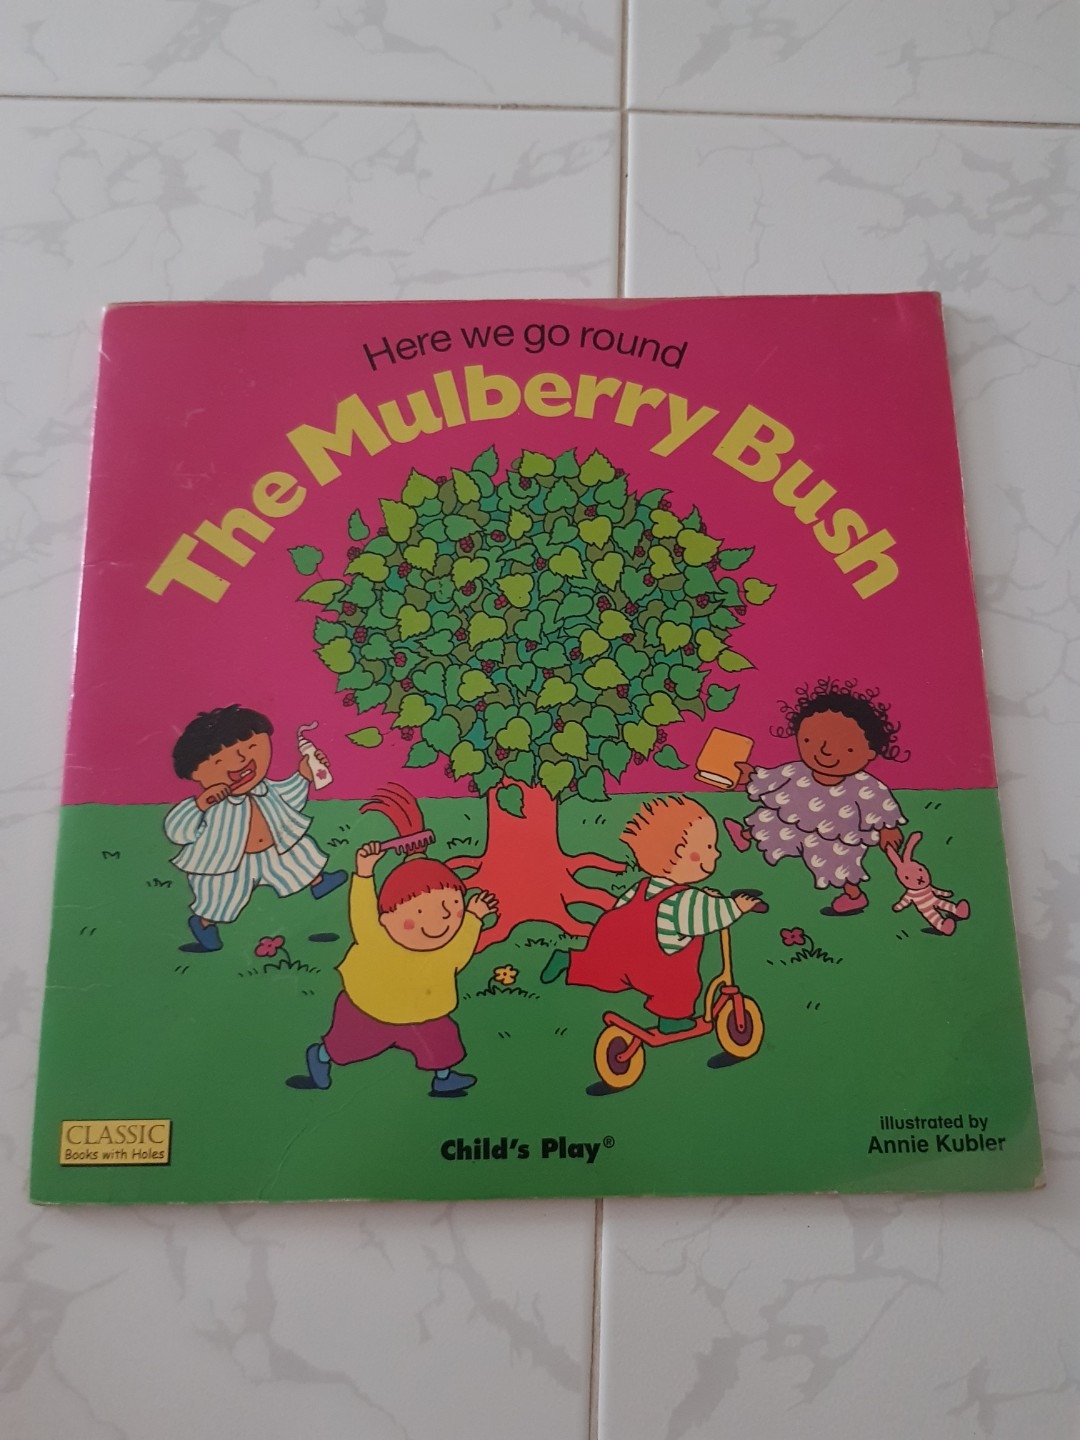 c3b2999fa36 The Mulberry Bush Story Book, Books & Stationery, Children's Books ...